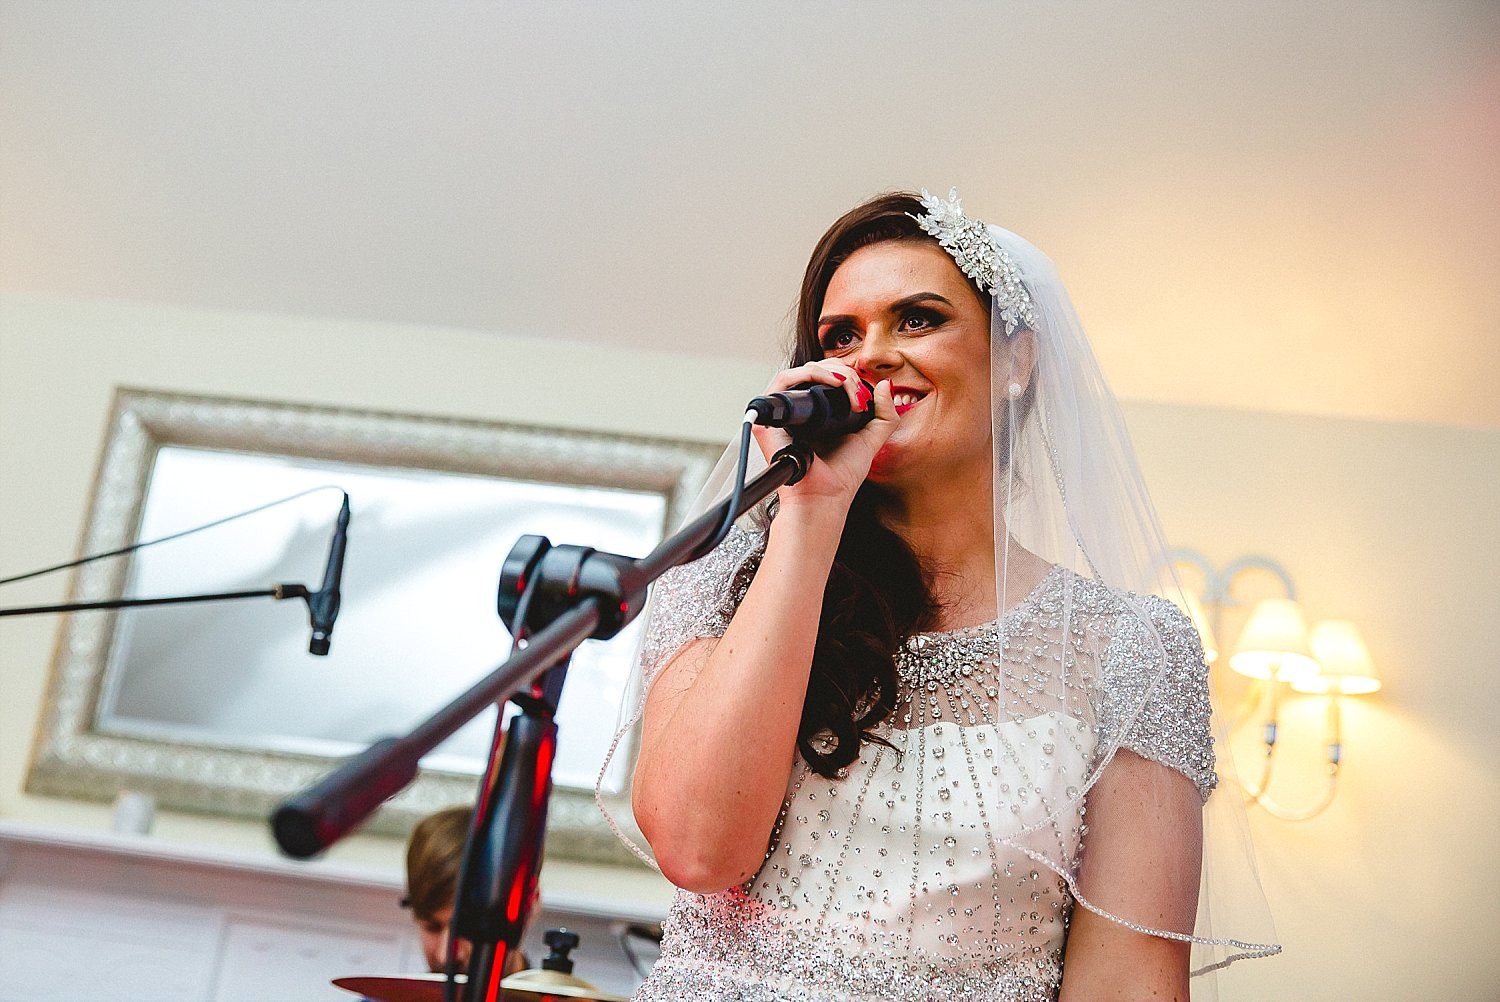 Houchins Wedding Photographer - Bride singing